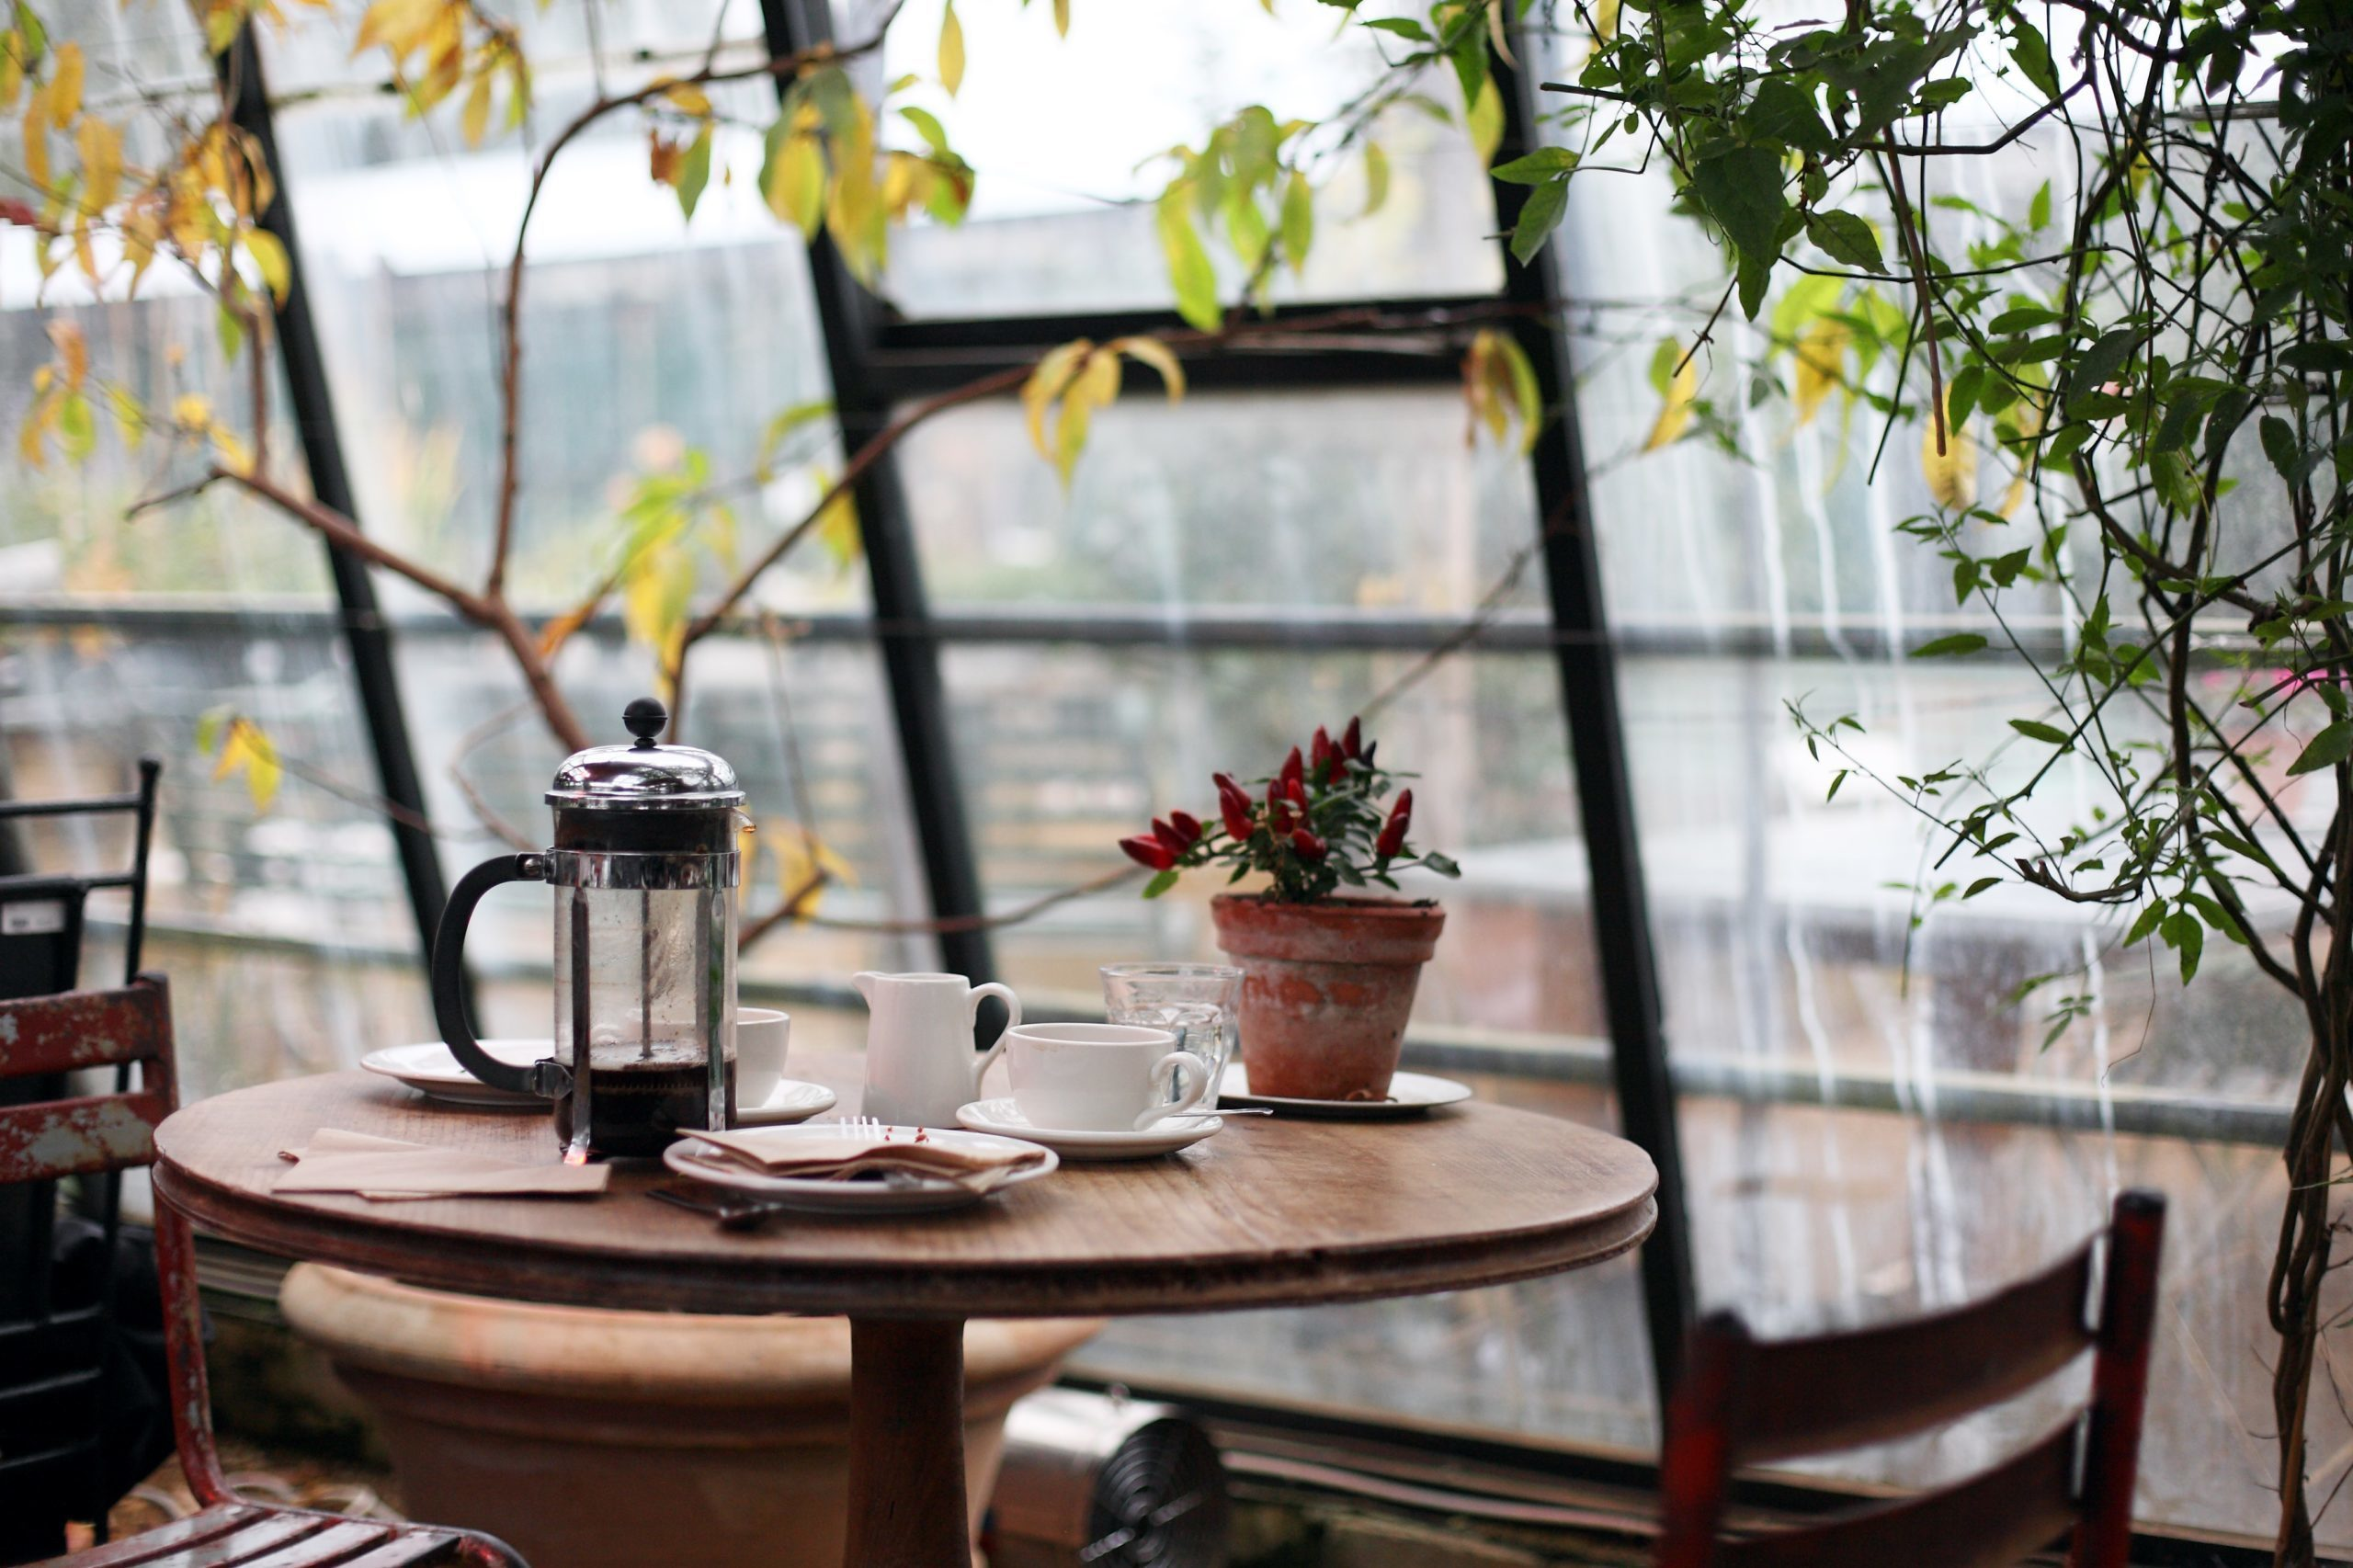 Is french press coffee better